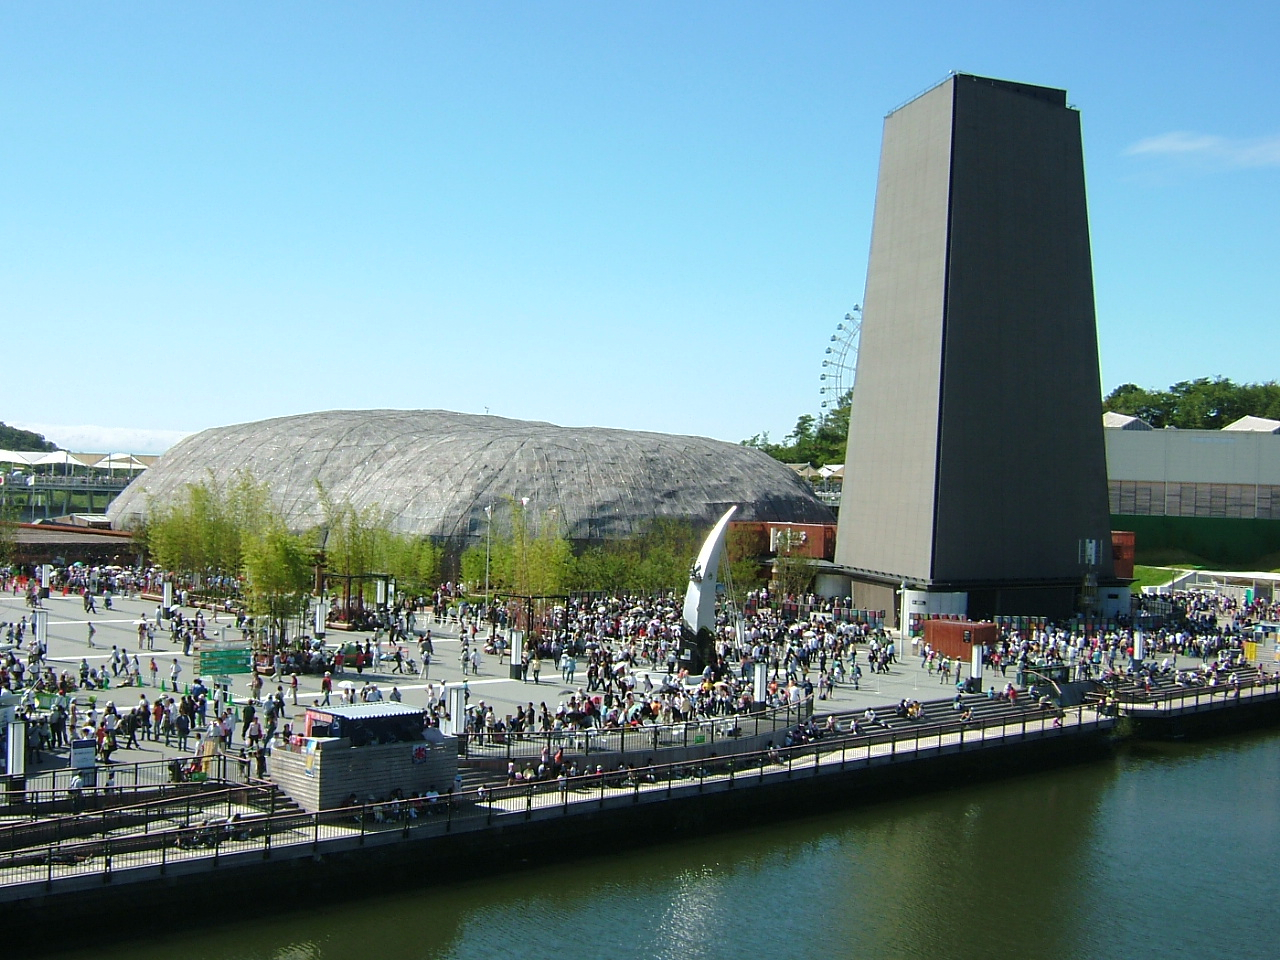 Aichi Japan  city images : ファイル:EXPO 2005 Aichi Japan in Japan Zone 01 Wikipedia